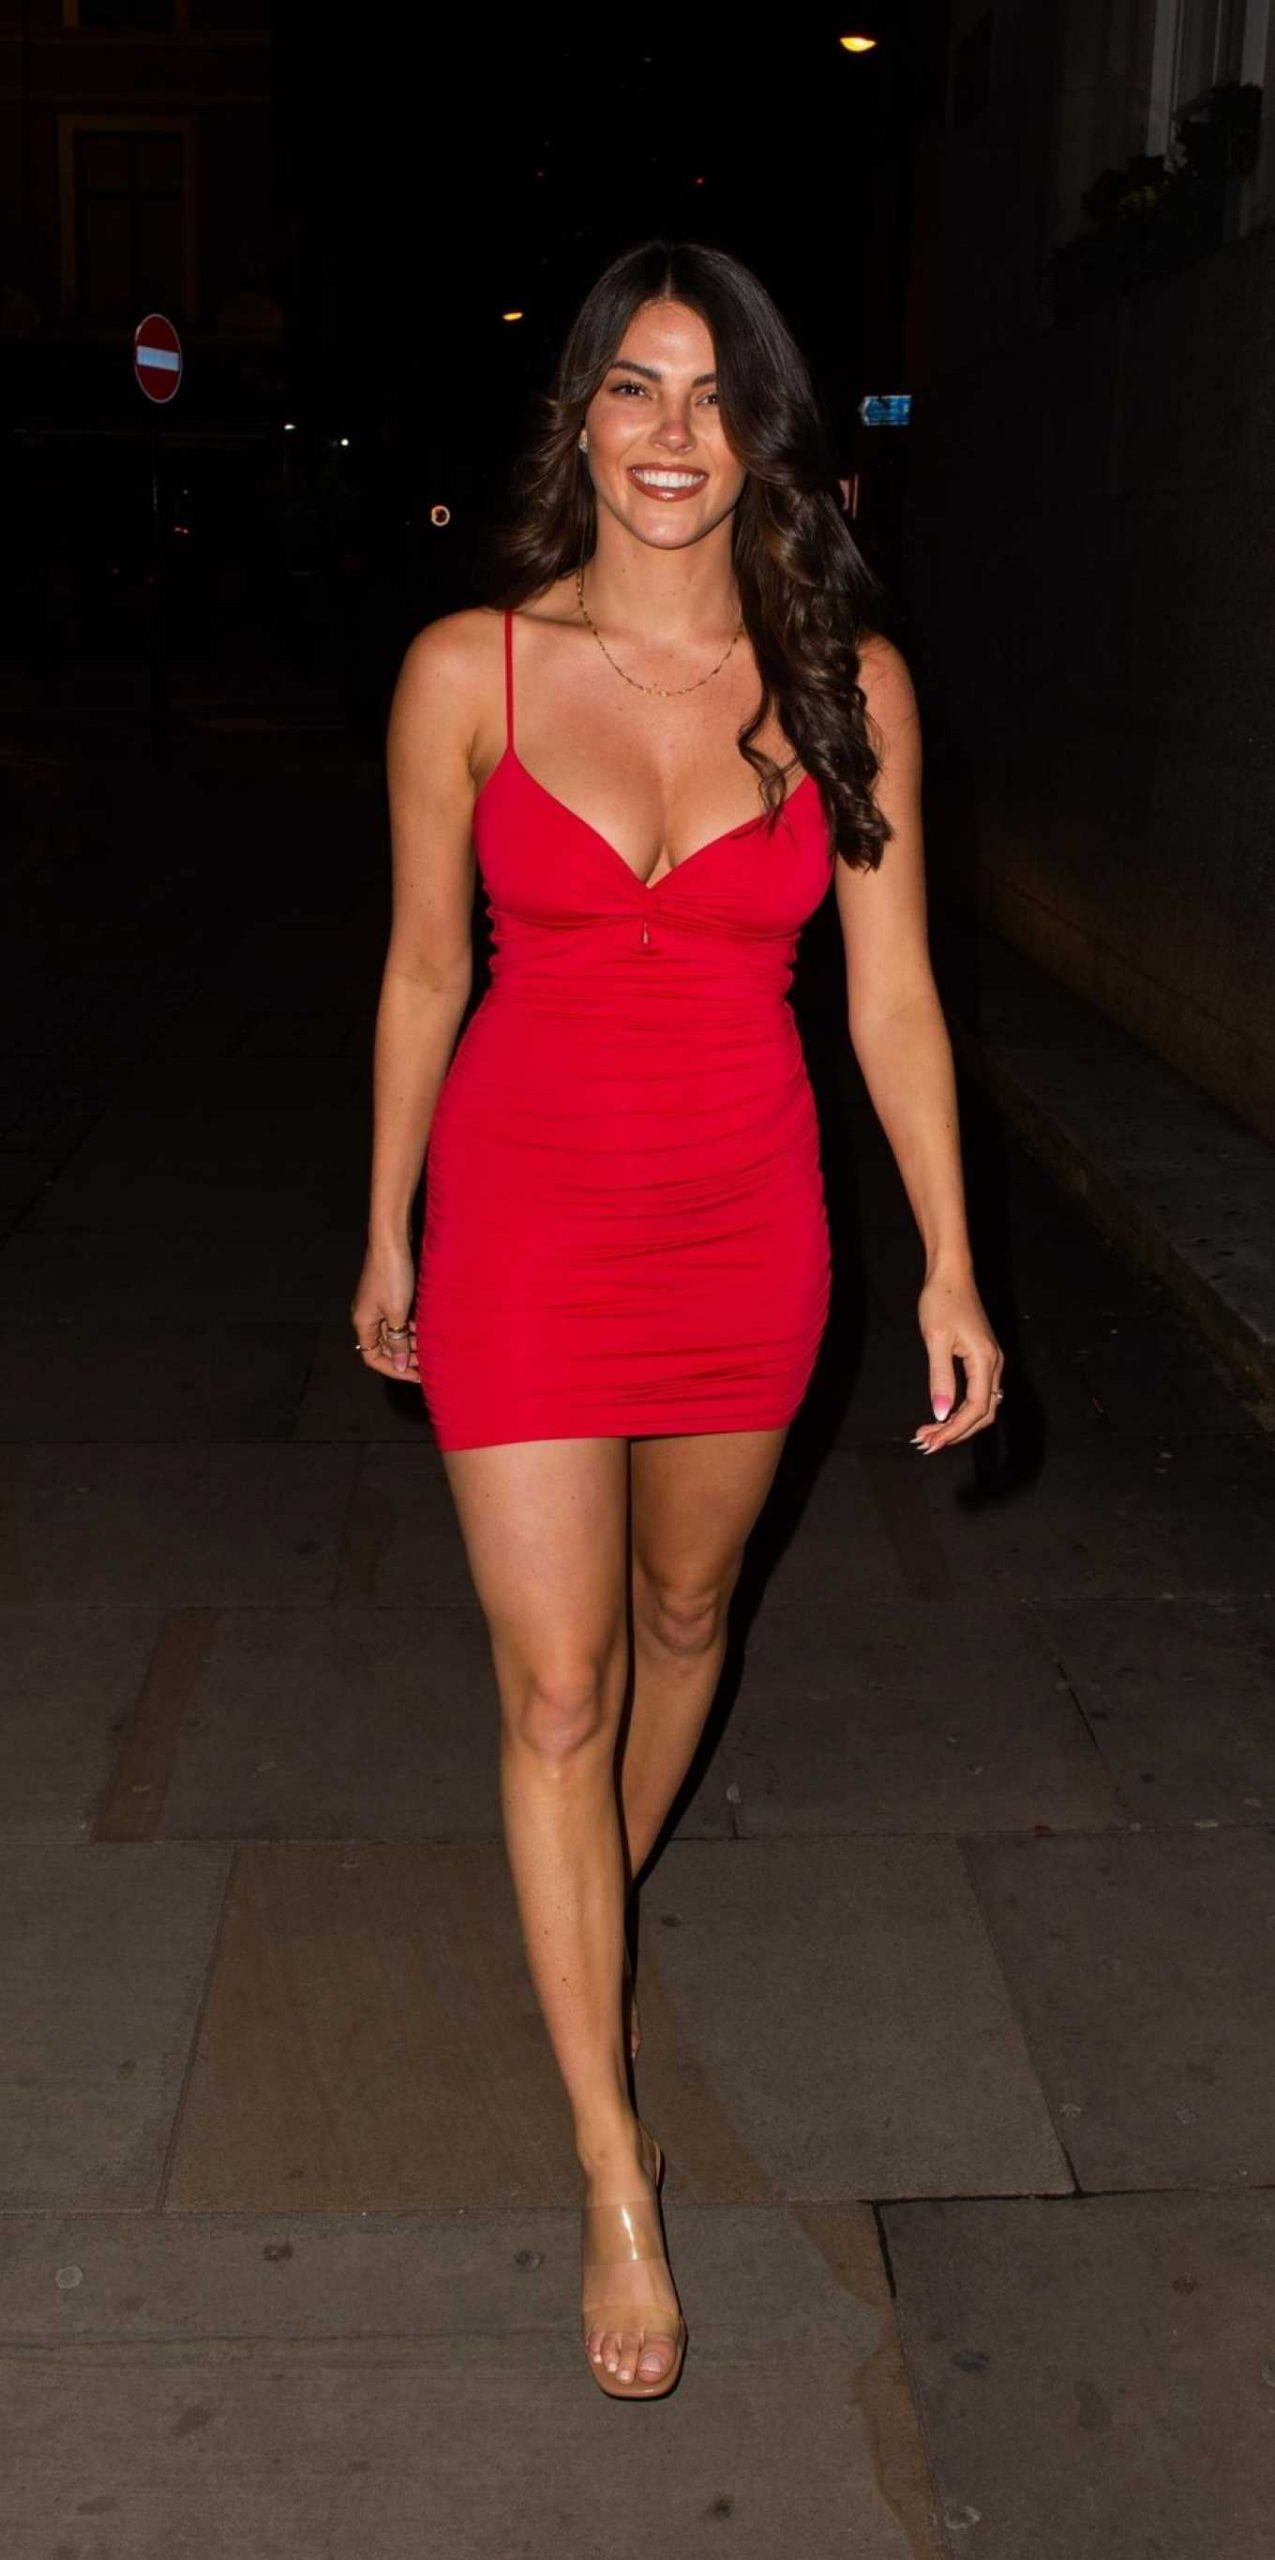 Courthouse Hotel Shoreditch: Rebecca Gormley In Red Mini Dress-11